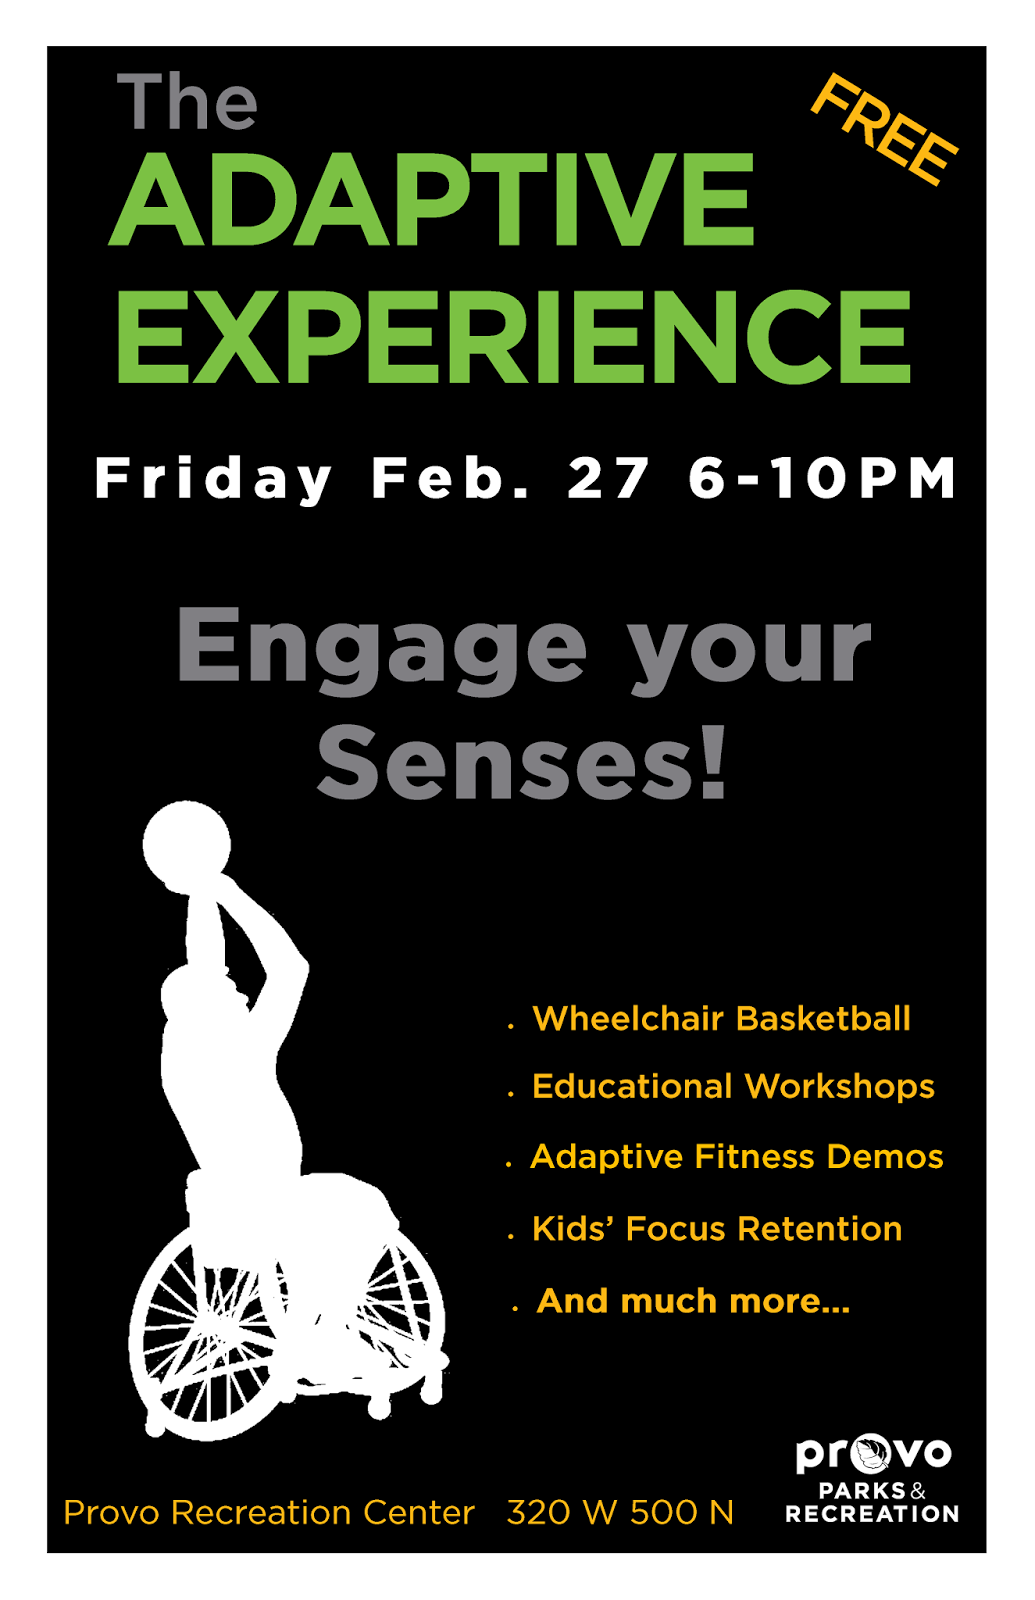 Friday Feb. 27 6-10 p.m. Engage your sense! Wheelchair basketball, educational workshops, adaptive fitness demos, Kids' focus retention, and much more... Provo Recreation Center 320 W 500 N